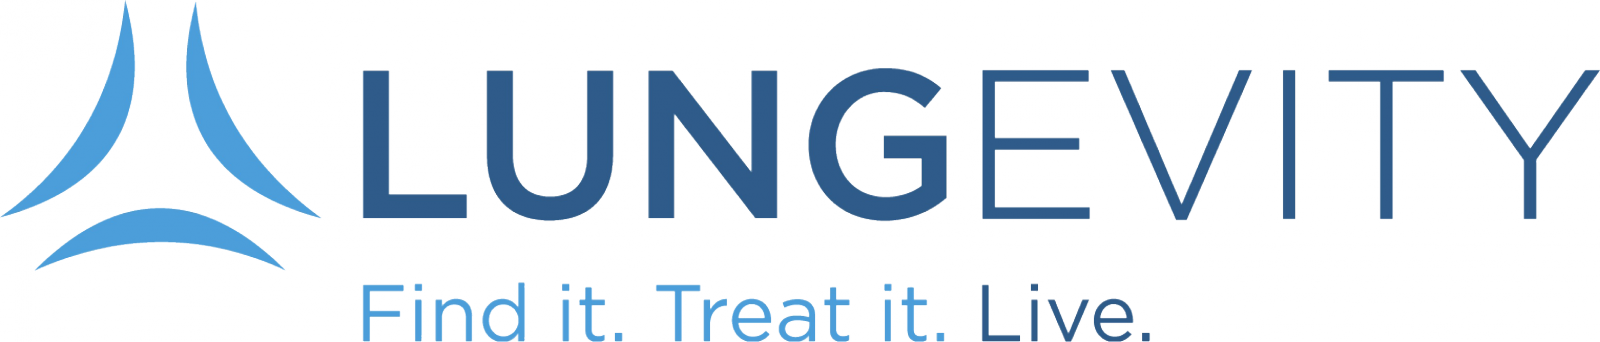 LUNGevity Takes Step Forward in Clinical Trial Eligibility Reform for Lung Cancer Patients